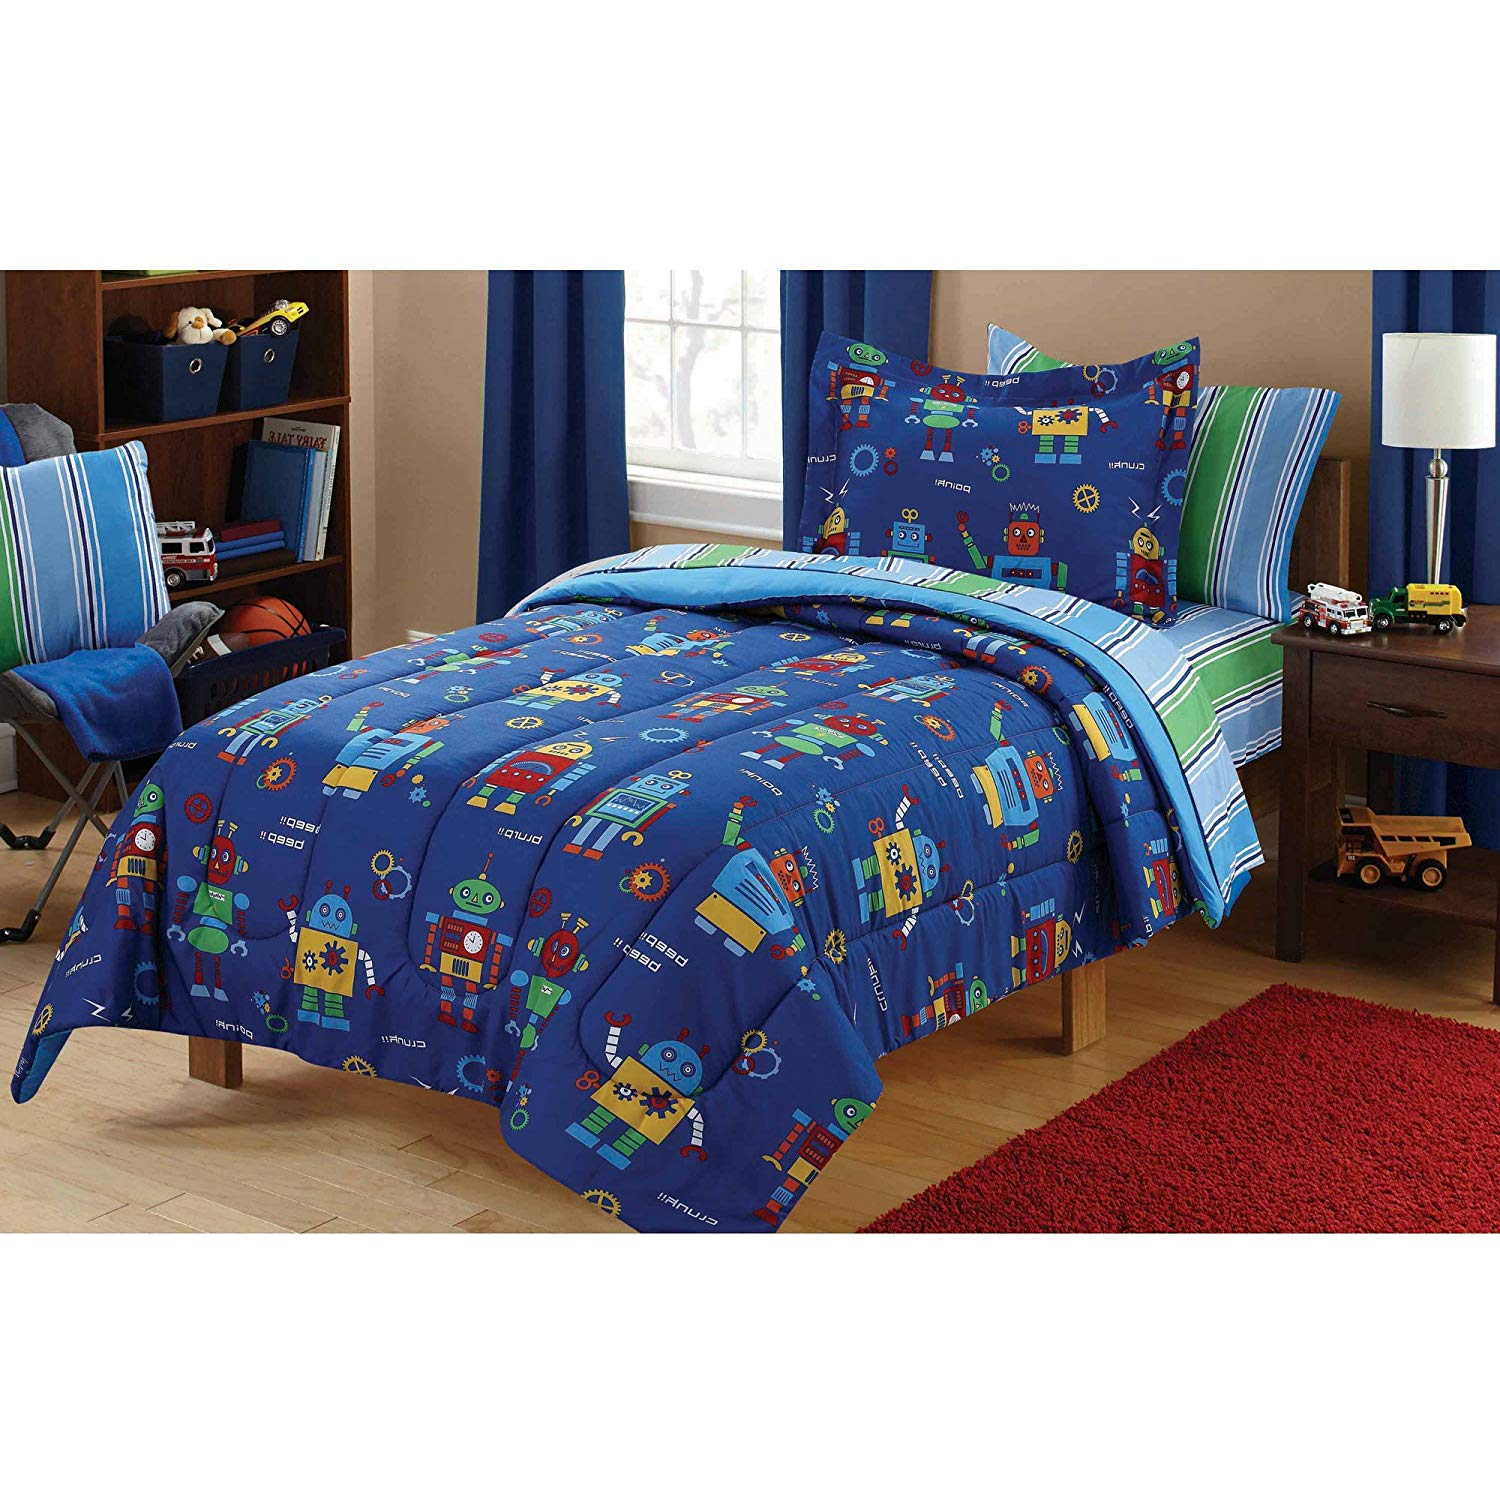 5 Piece Kids Boys Blue Green Robots Comforter Twin Set, Red Robot Bedding Science Fiction Themed Bed in Bag Futuristic Machine Mechanic Gear Droid Fantasy Adventure Novelty Graphics Design, Polyester